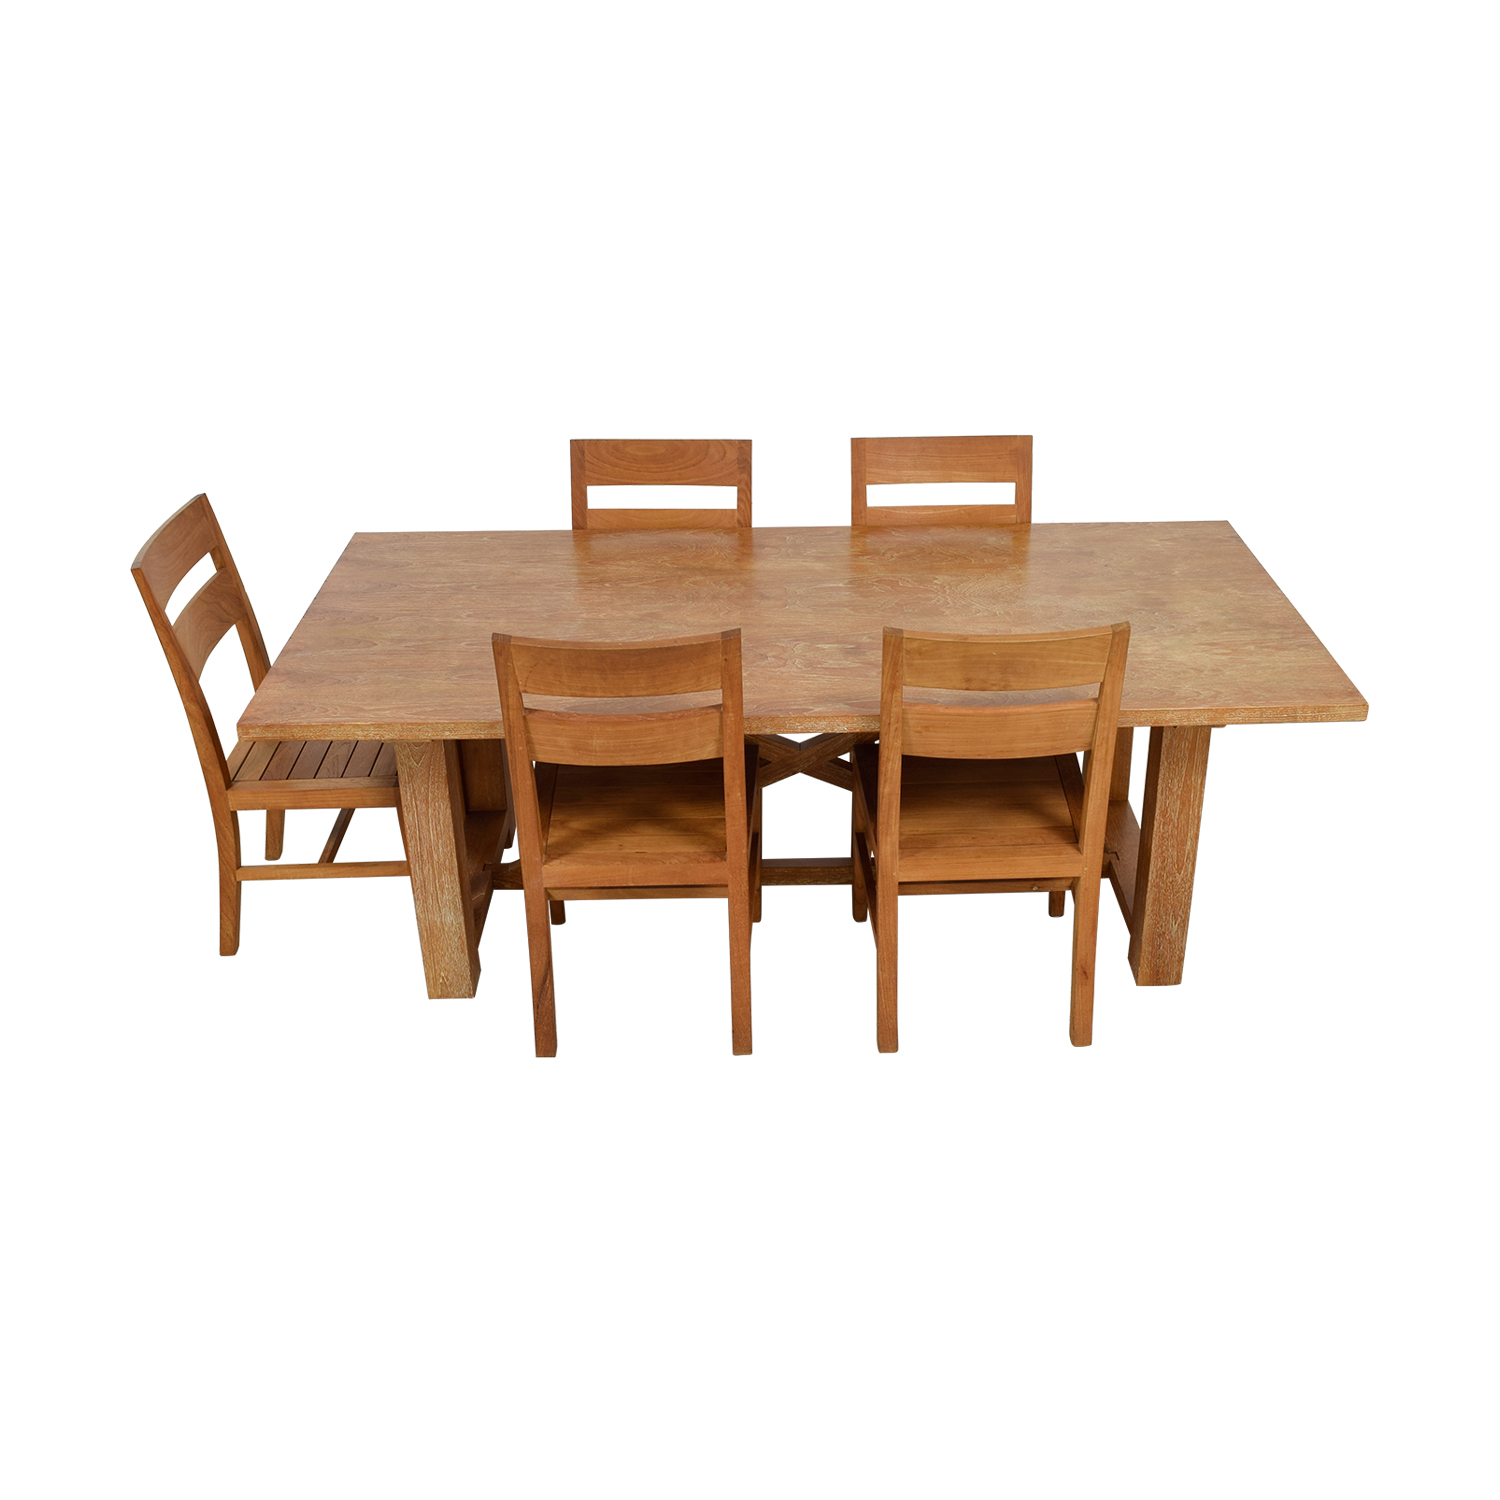 Crate & Barrel Crate & Barrel Teak Wood Dining Set for sale